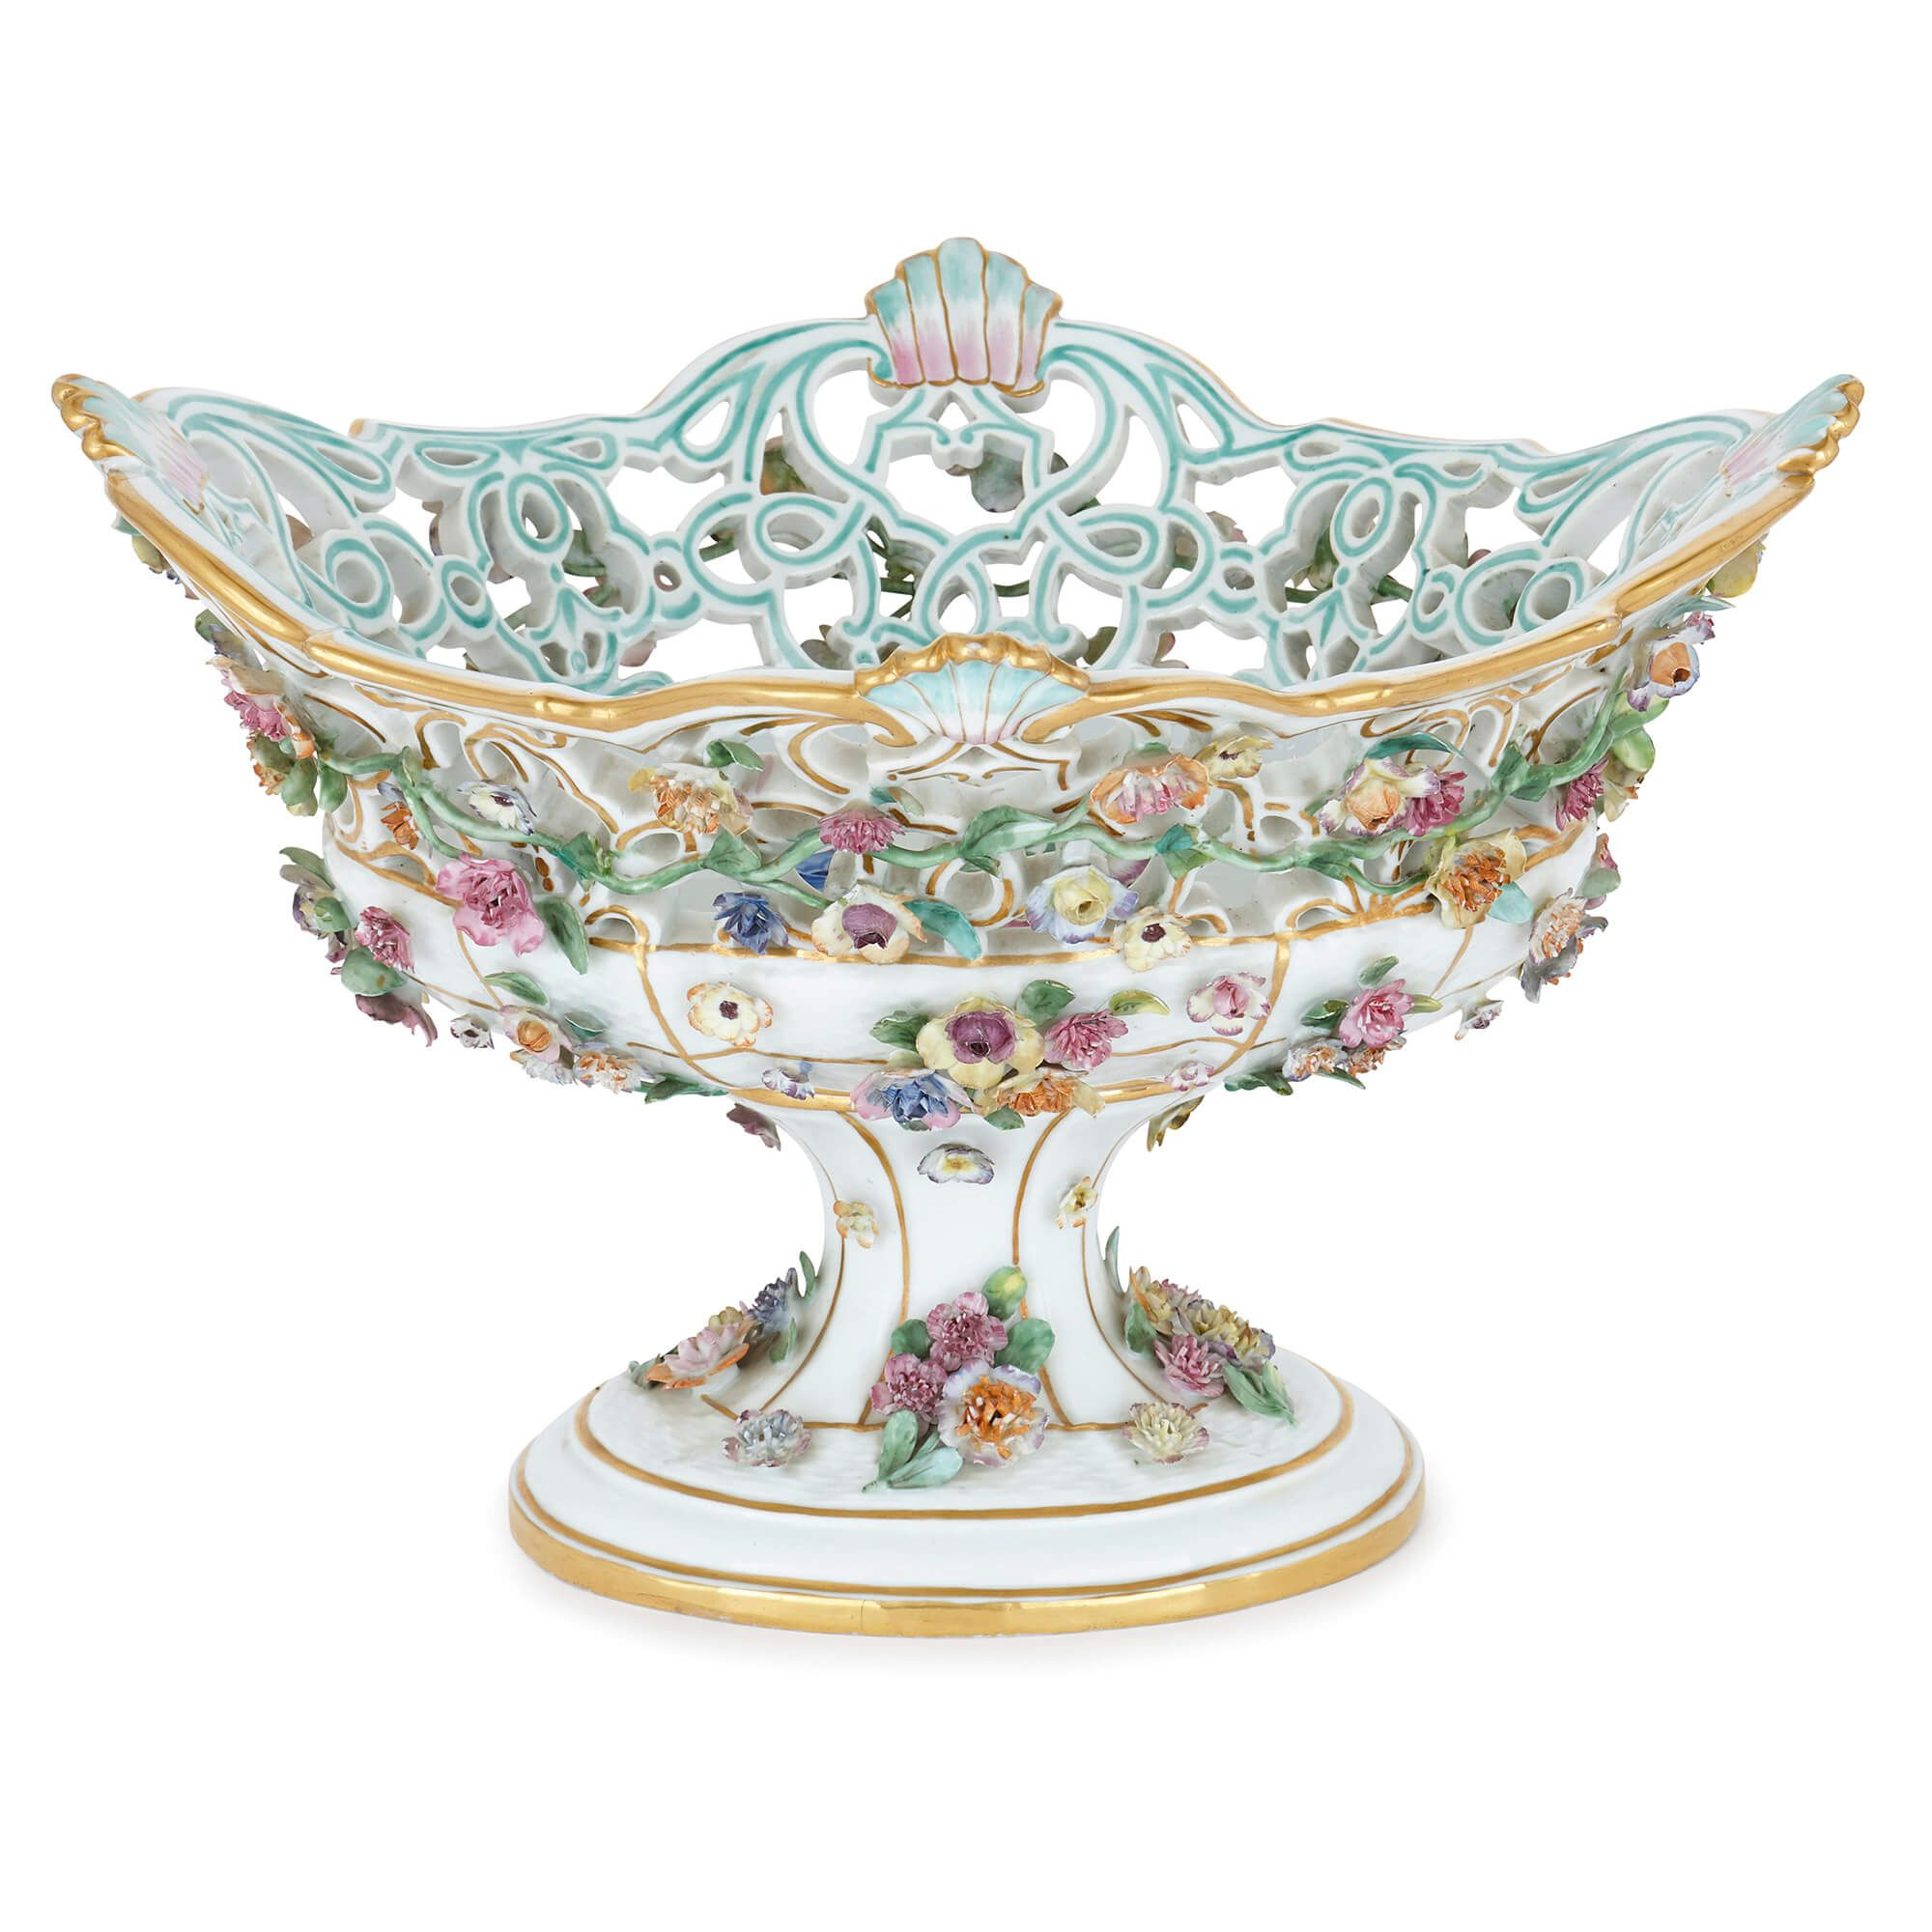 19th Century German Meissen Porcelain Fruit Bowl Mayfair